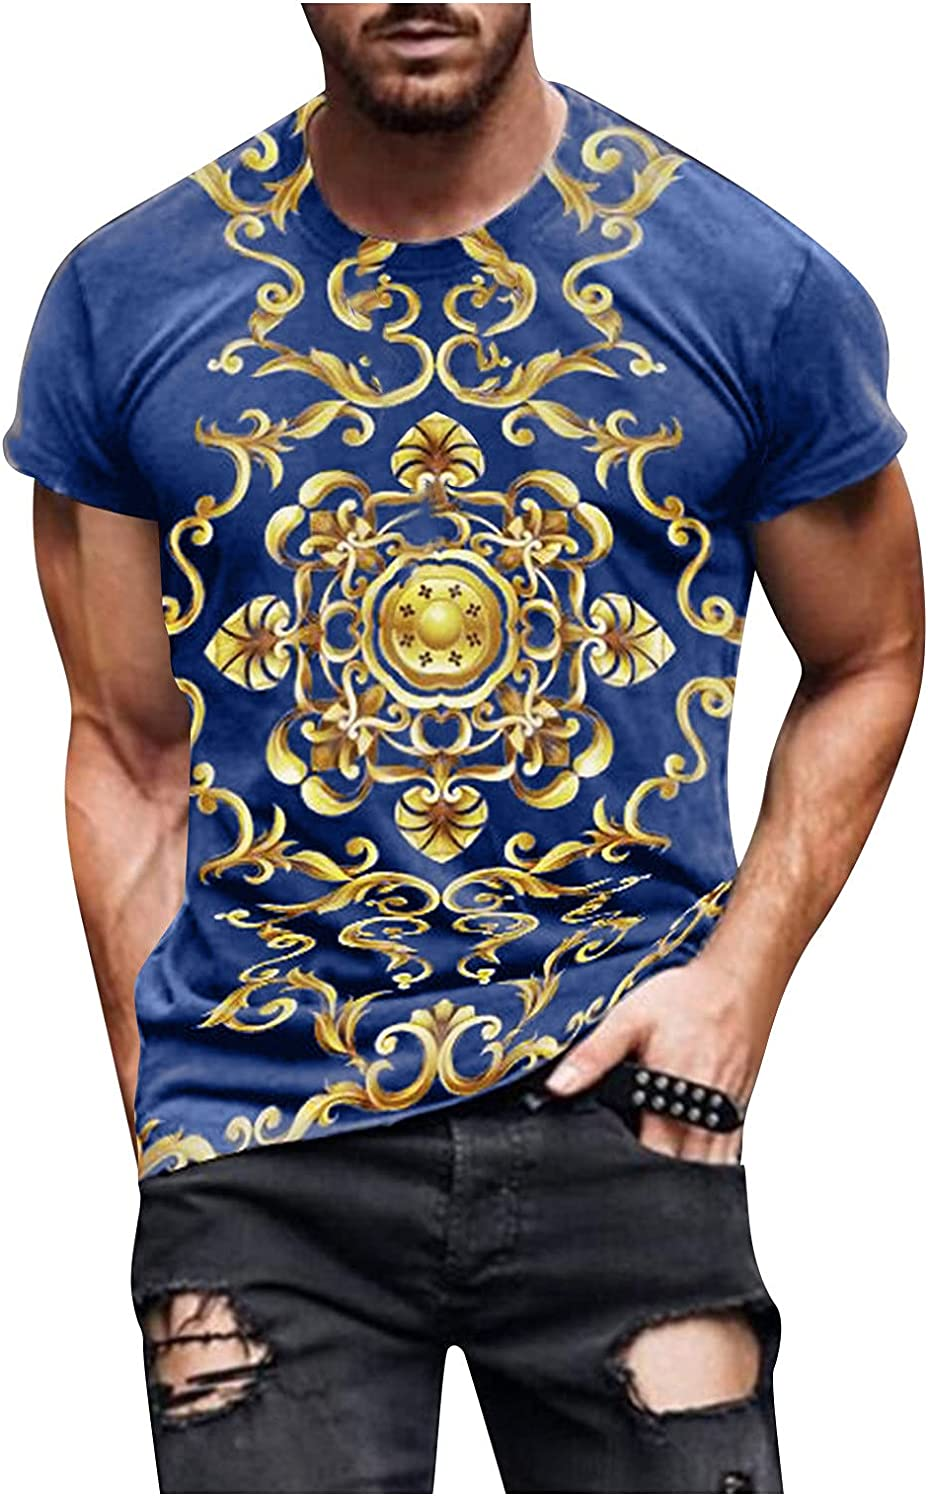 Men's Gym Workout T Shirts Basic Short Sleeve Slim Fit Muscle Bodybuilding Casual O Neck Printed Tee Tops